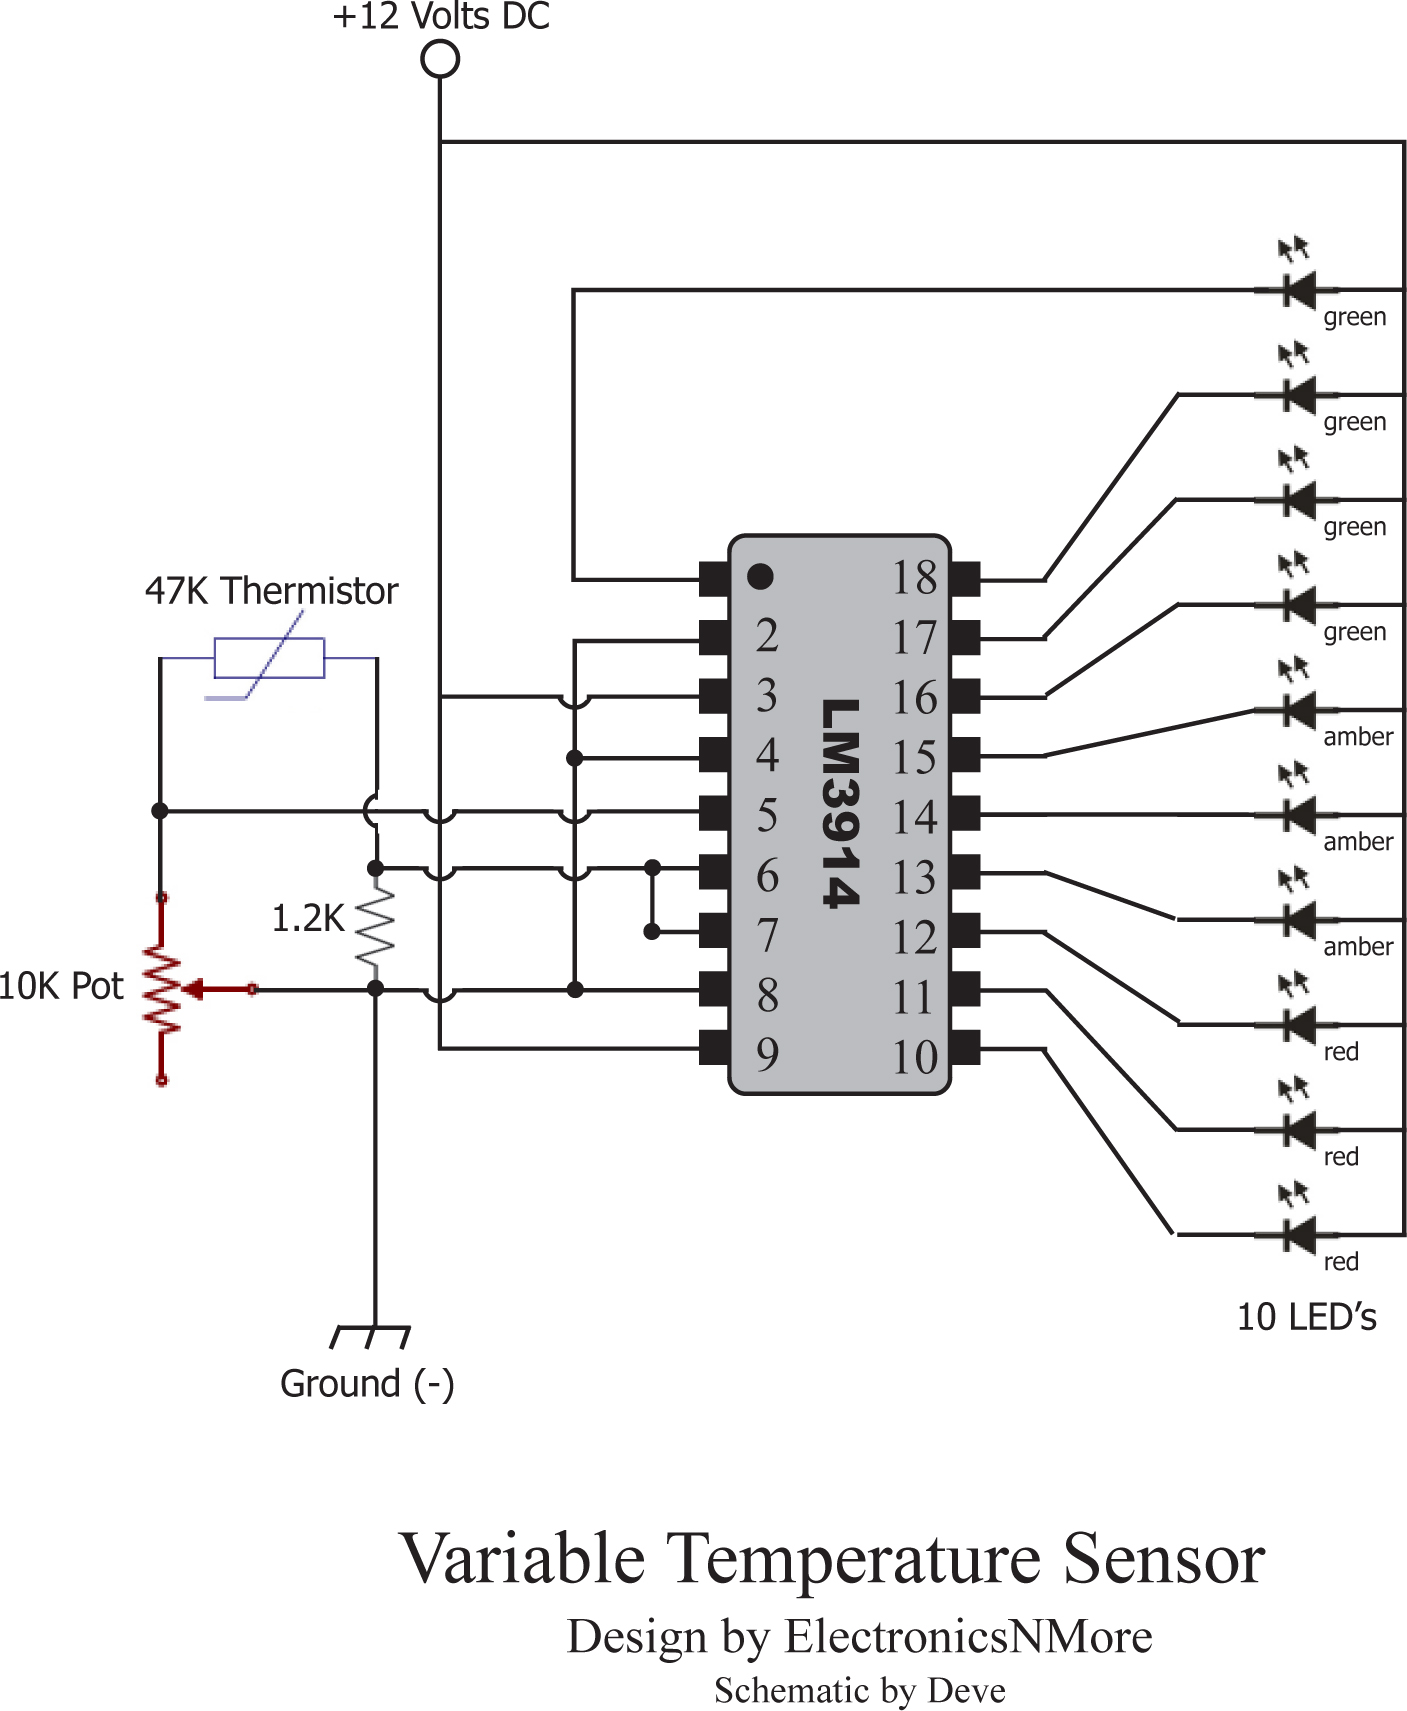 TempSensorSchematiclg thermistor wiring diagram efcaviation com thermistor wiring diagram at readyjetset.co